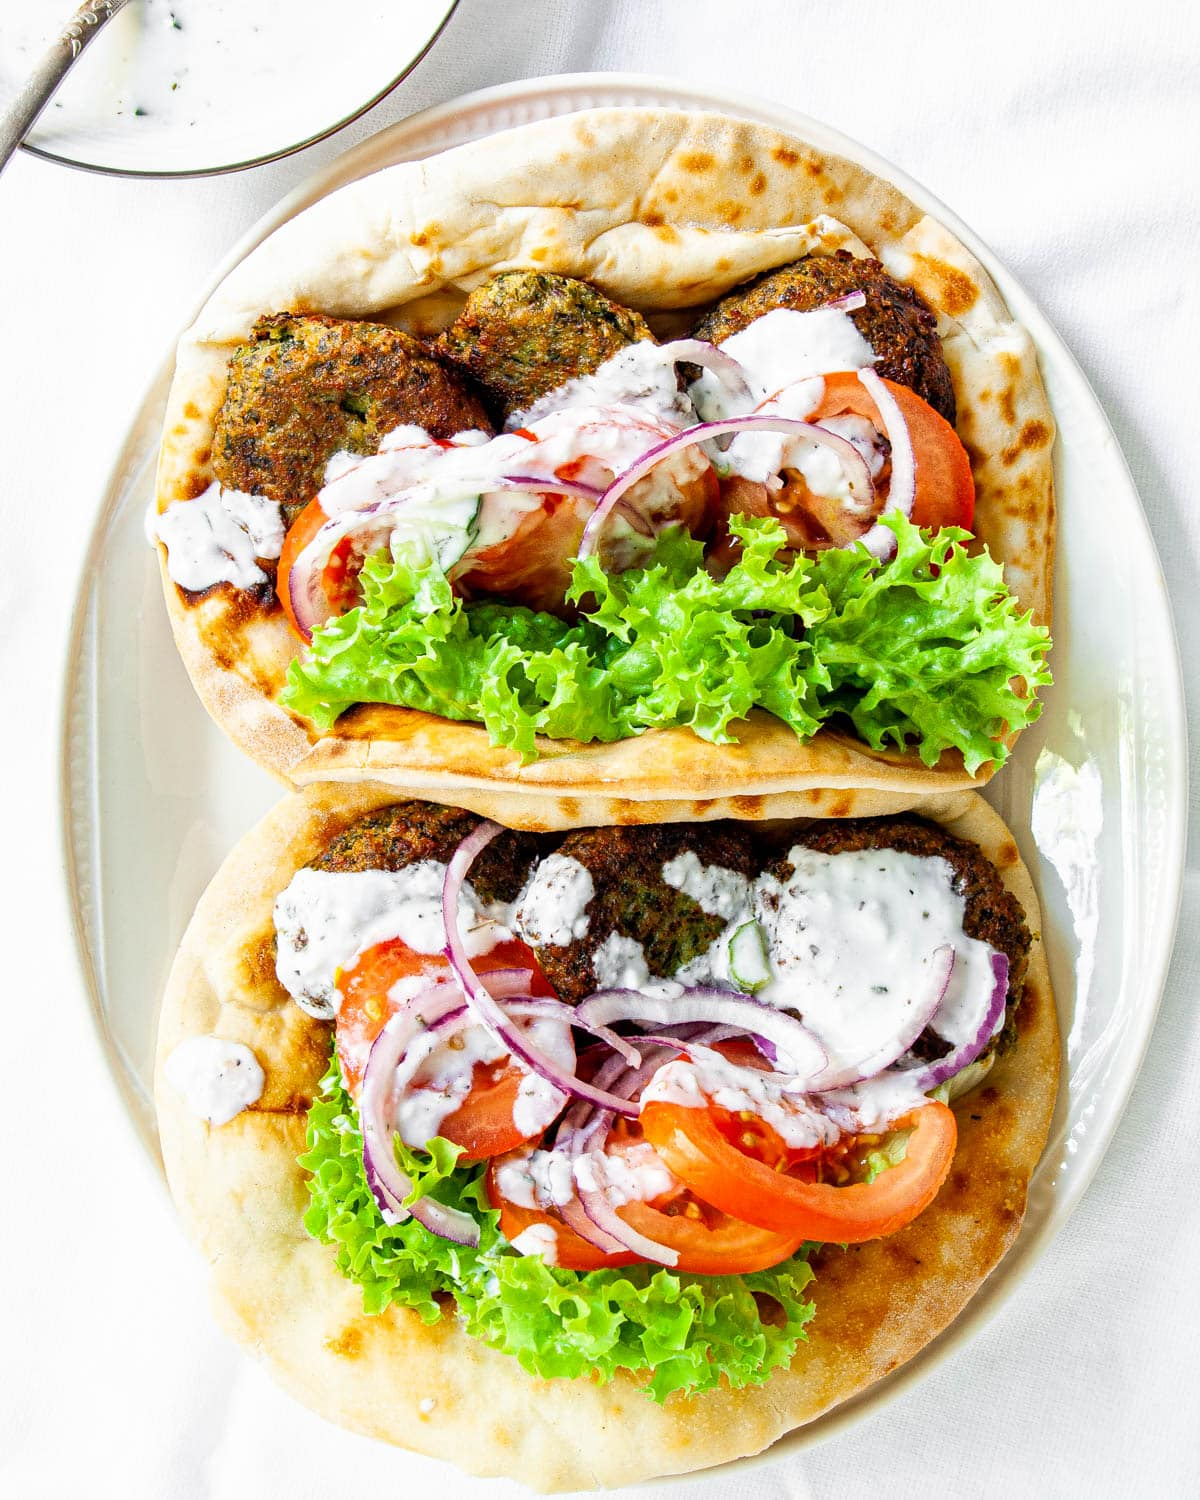 two falafel stuffed pittas on a white plate